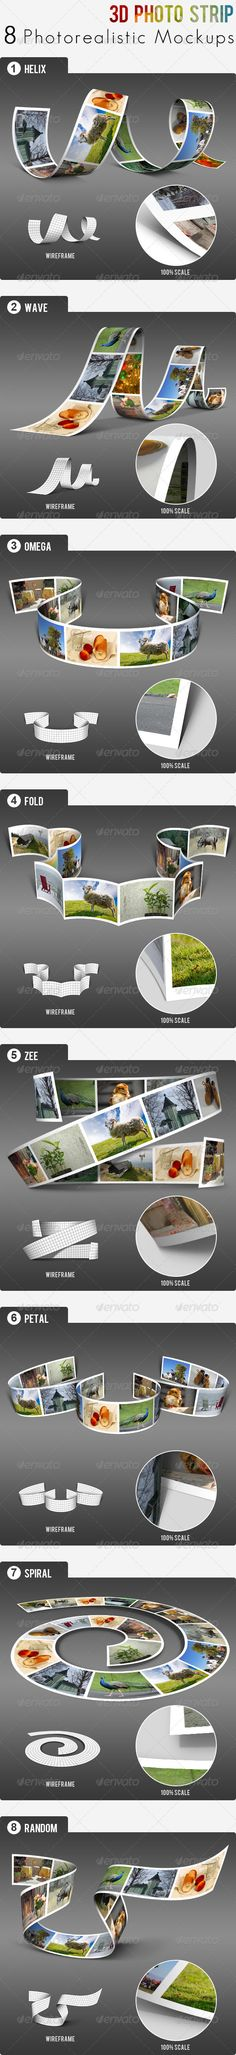 3D Photo Strip - Photorealistic Mockups #realistic #ribbon #shadow • Available here → http://graphicriver.net/item/3d-photo-strip-photorealistic-mockups/3354952?s_rank=808&ref=pxcr